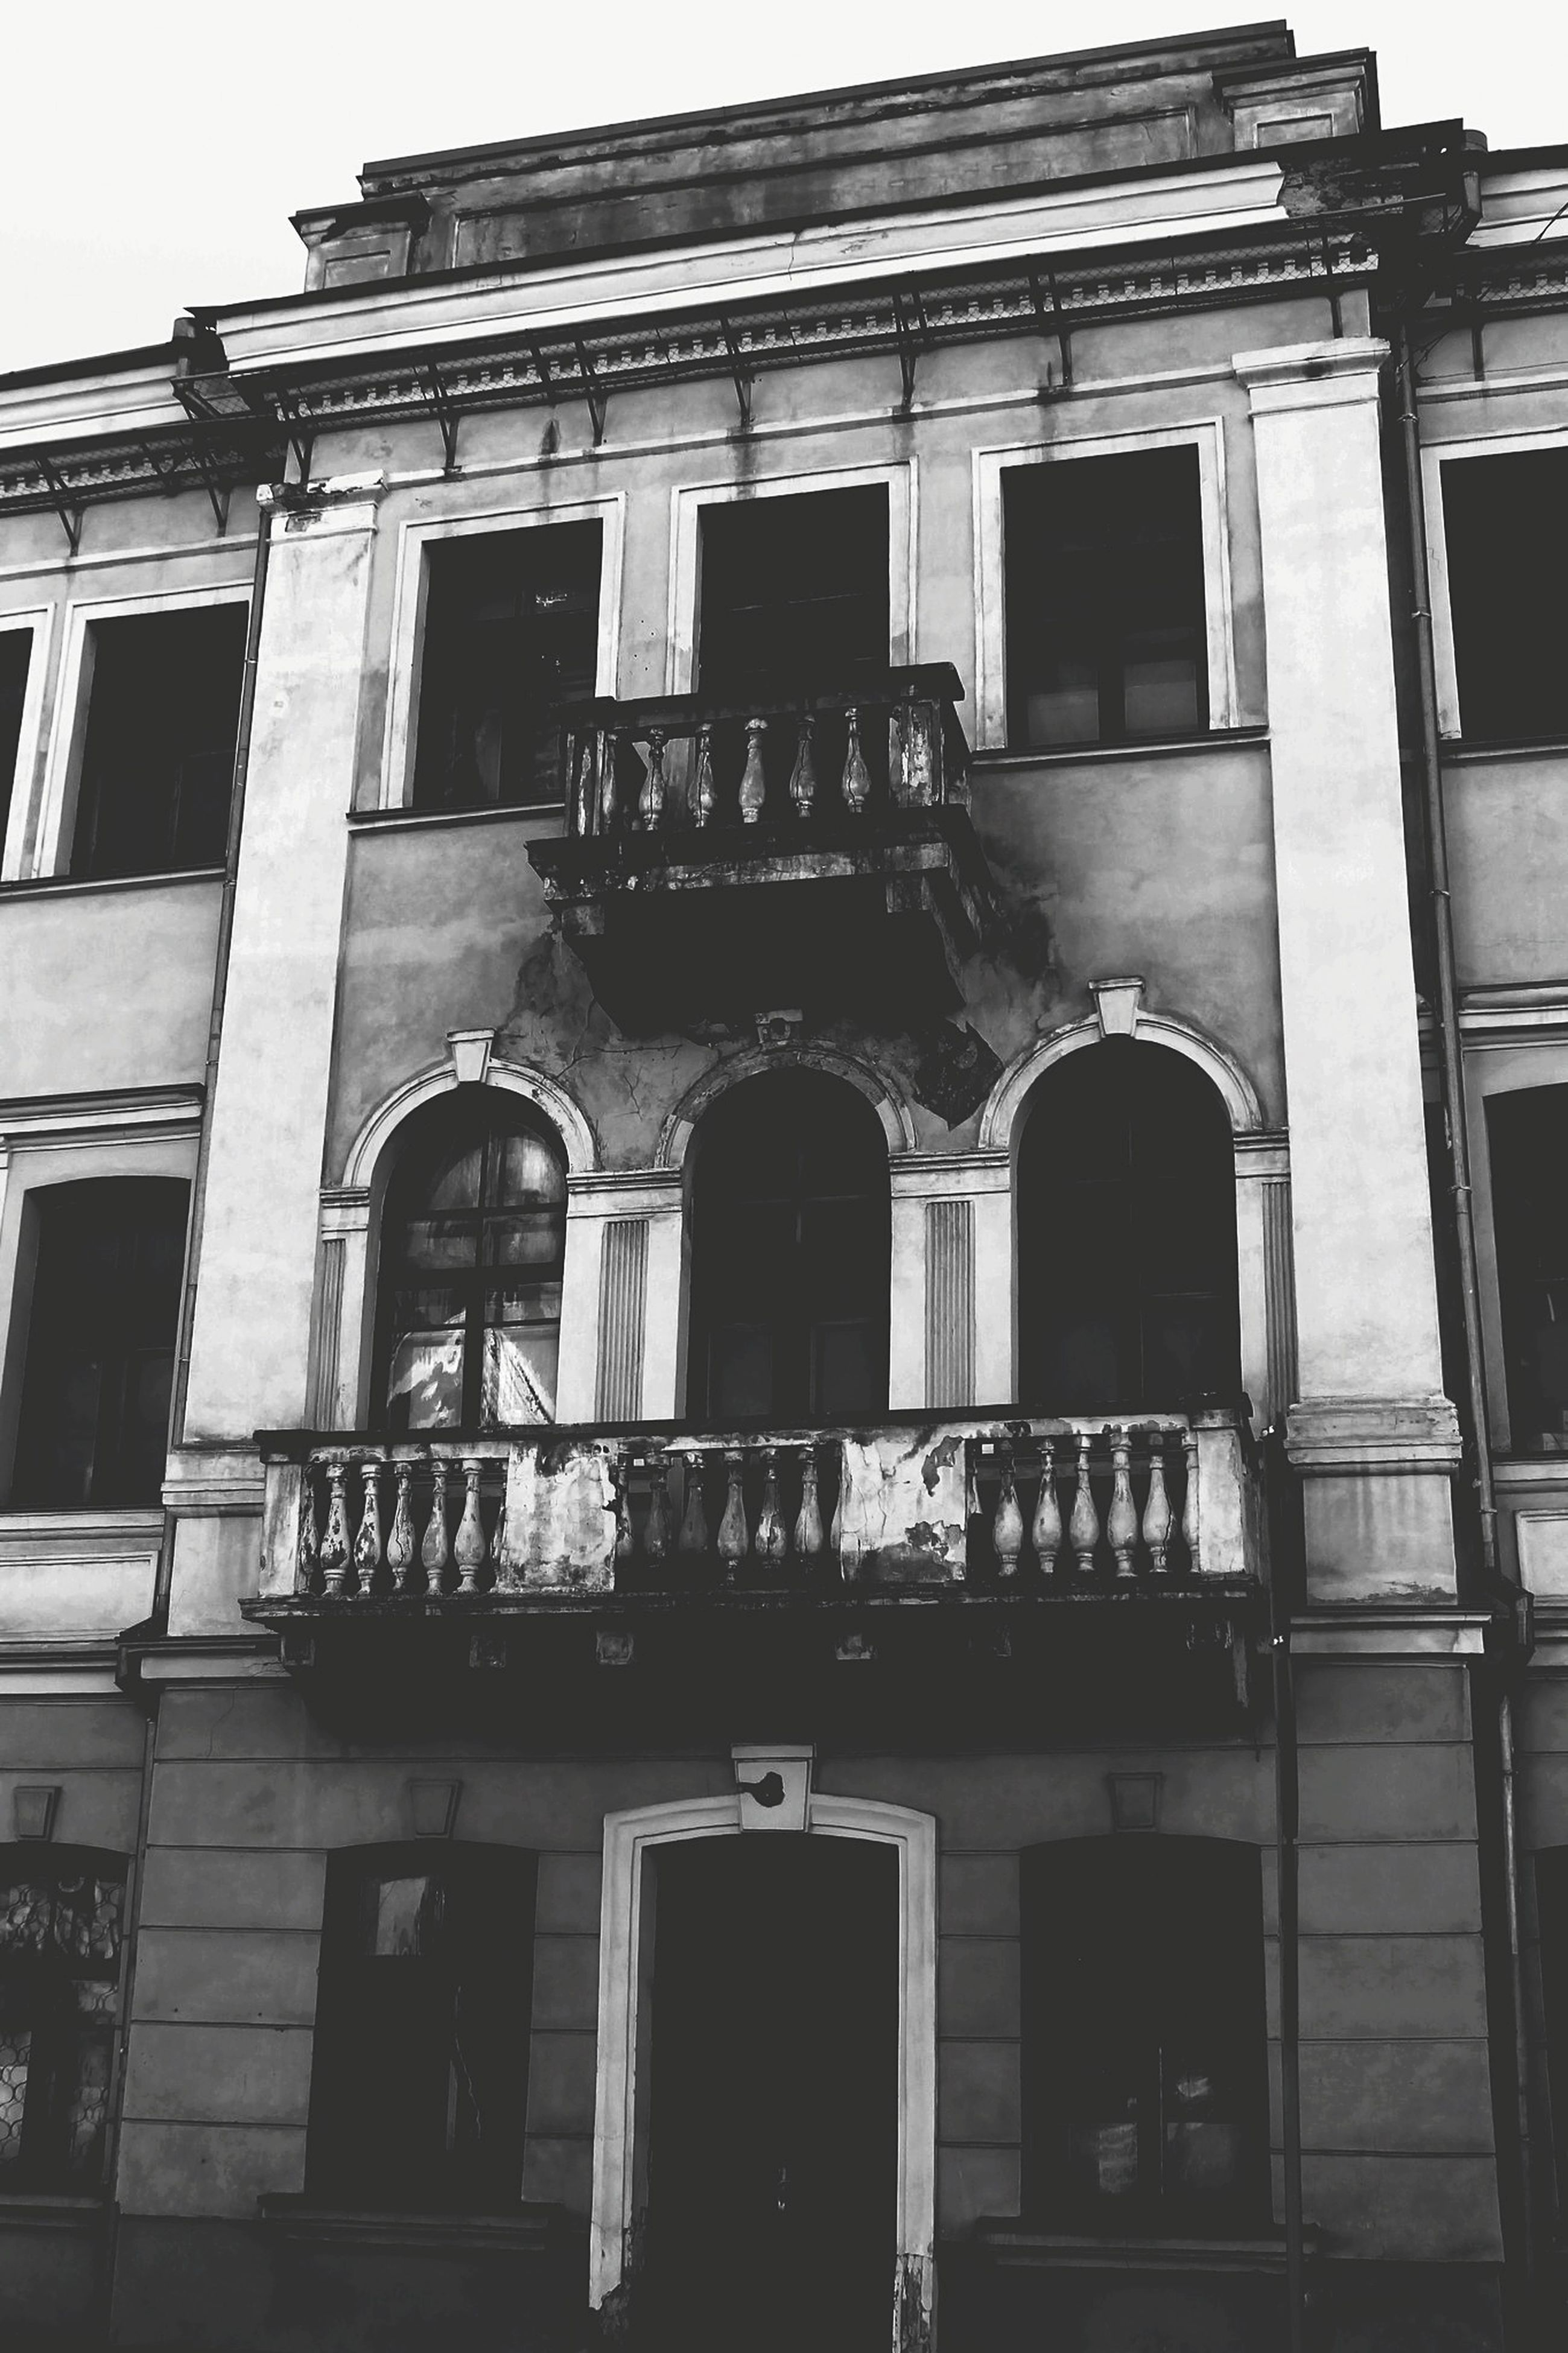 architecture, building exterior, built structure, window, low angle view, building, residential building, old, facade, residential structure, balcony, house, exterior, arch, day, outdoors, no people, city, glass - material, door